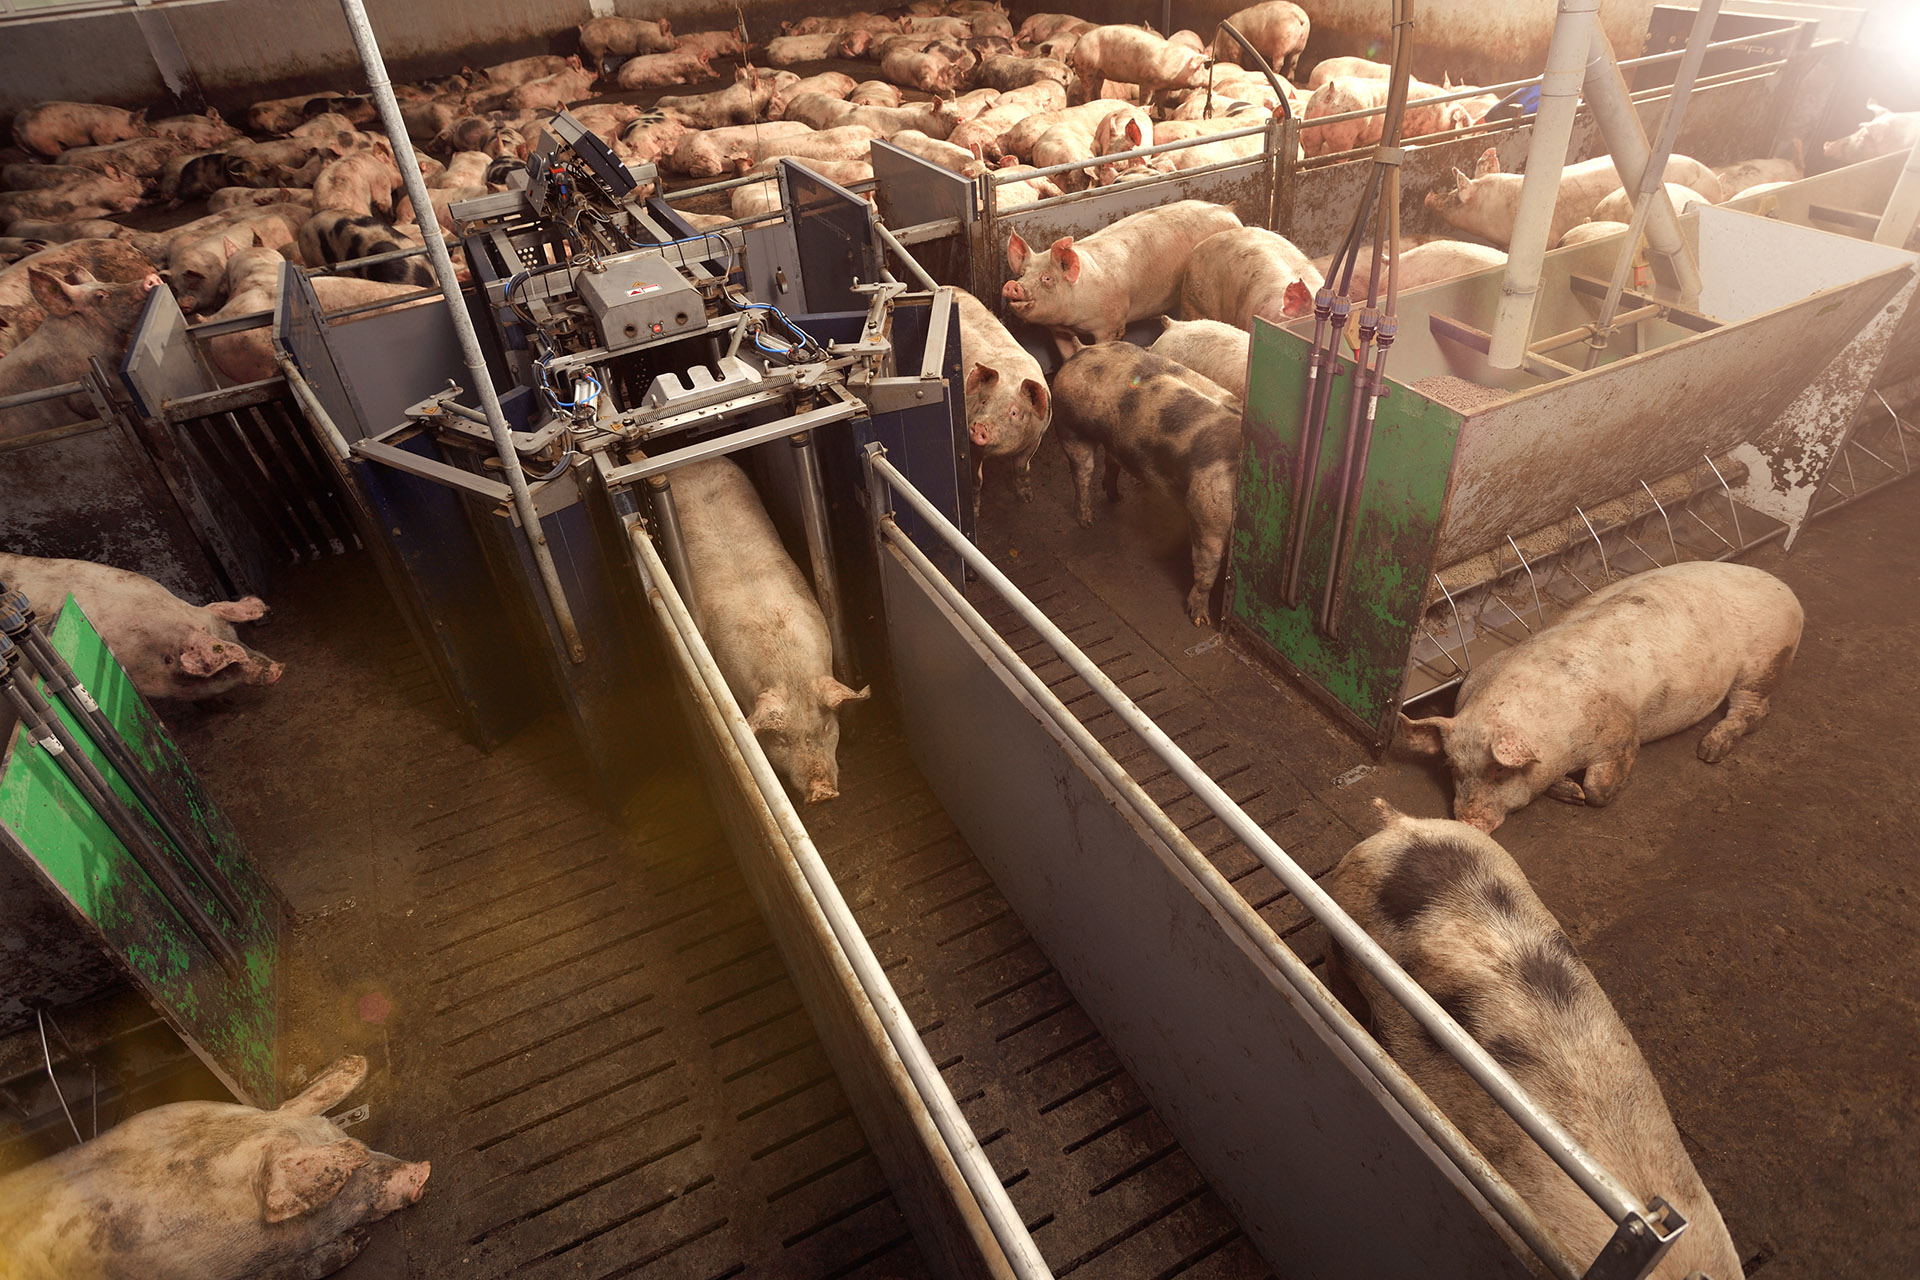 How can you use every square inch of your pig stall optimally?